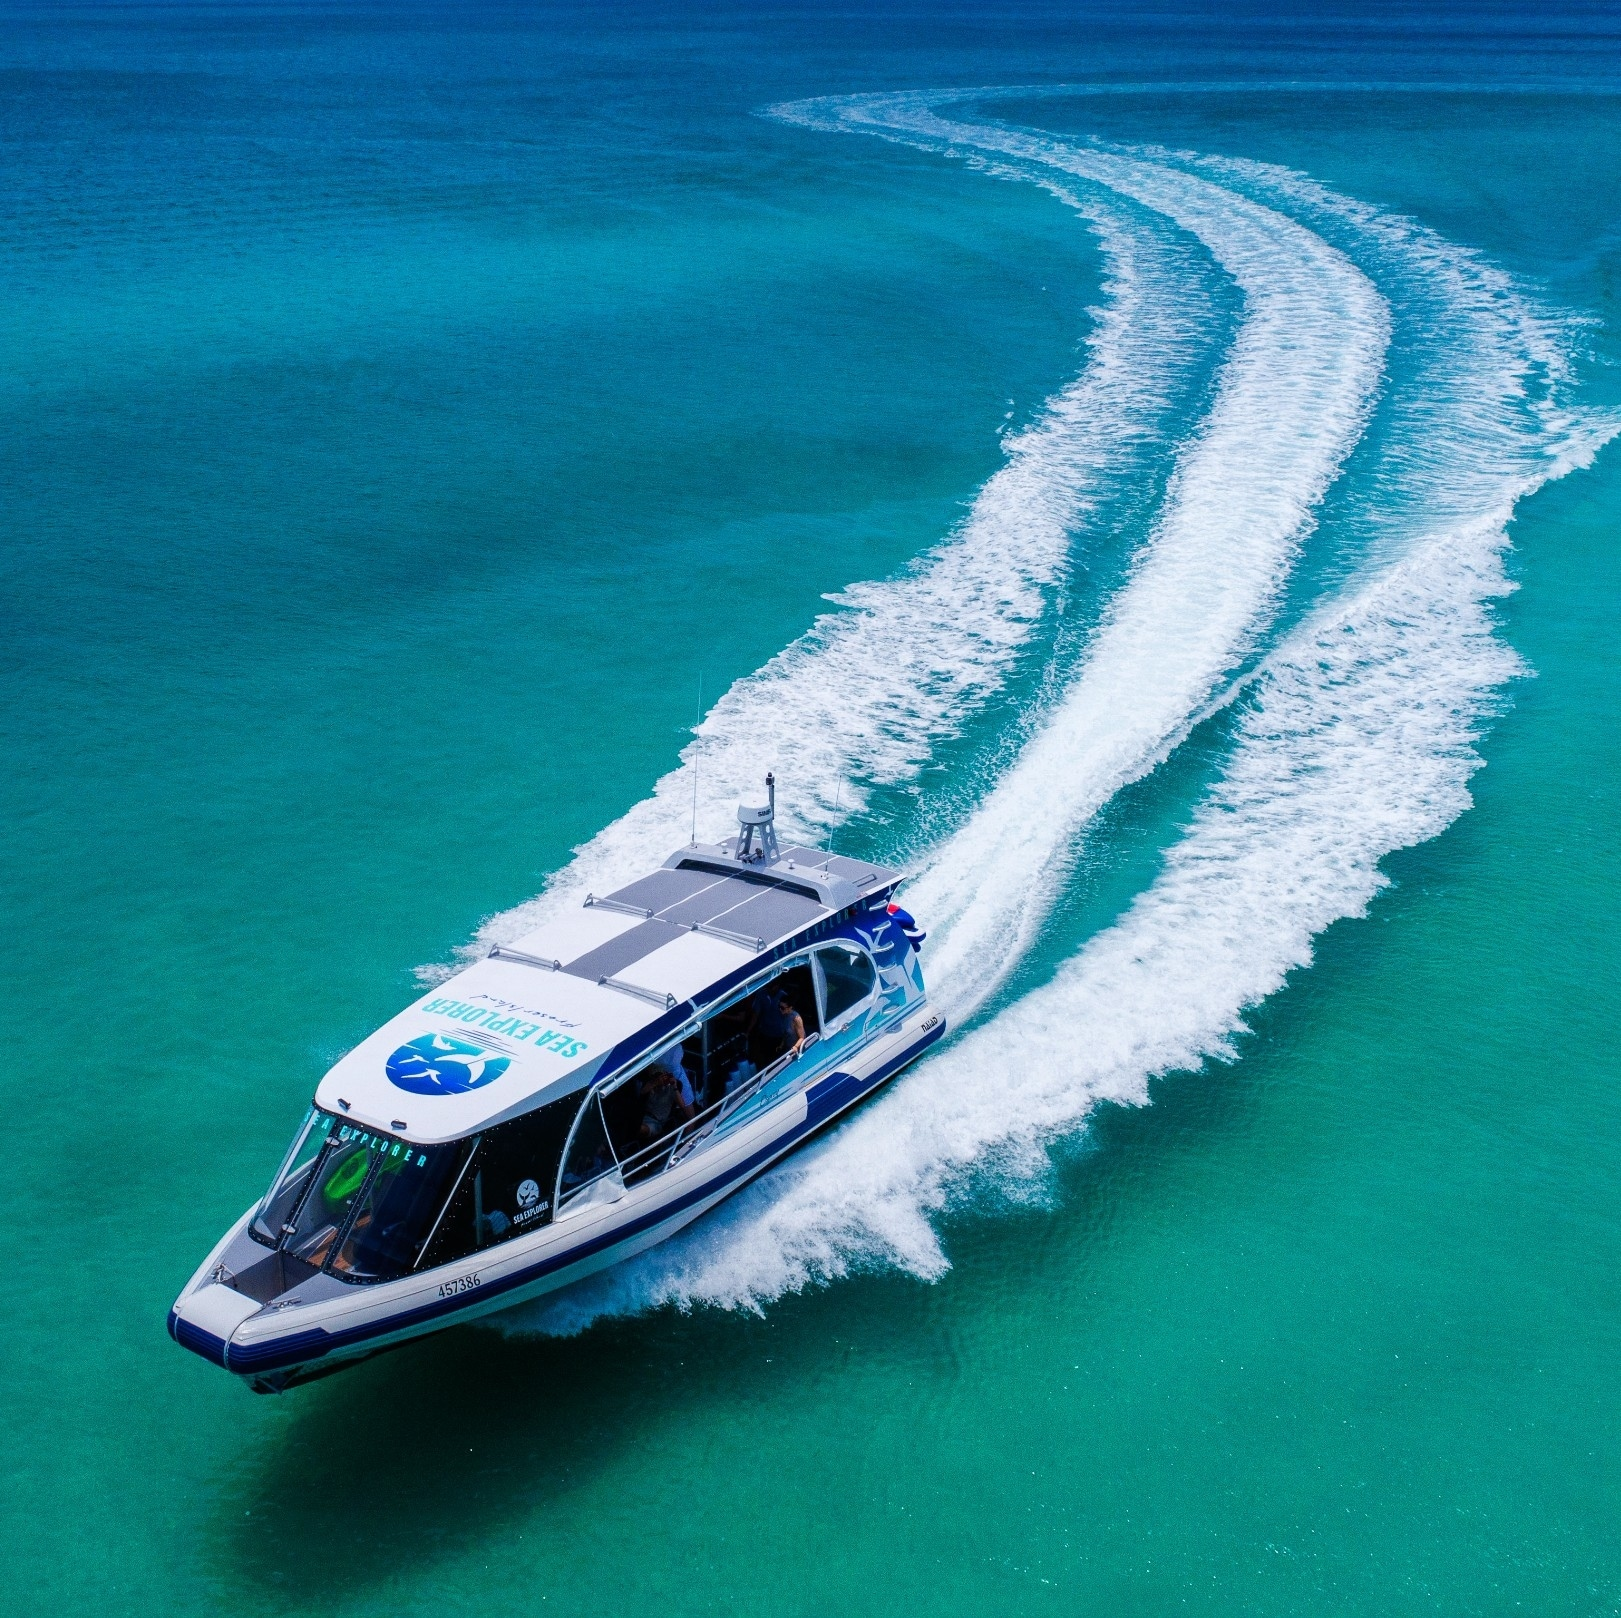 Sea Explorer boat off the coast of Fraser Island © Kingfisher Bay Resort